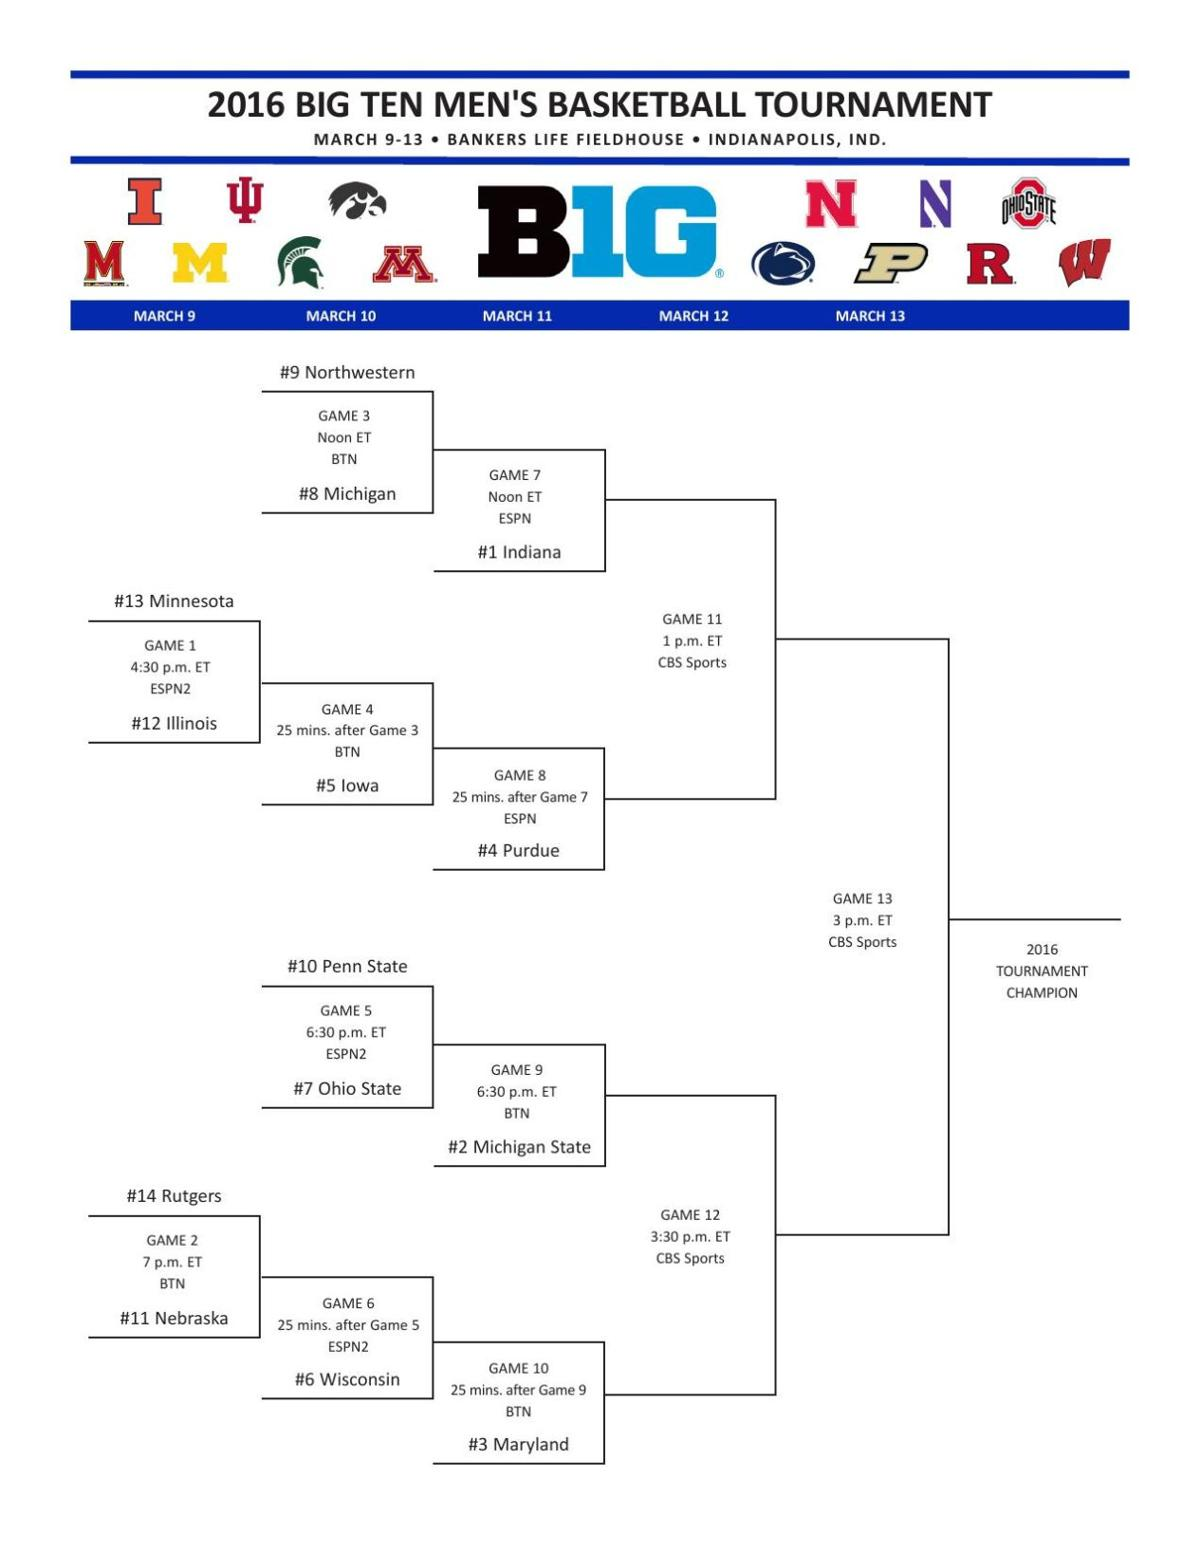 printable 2016 big ten mens basketball tournament bracket